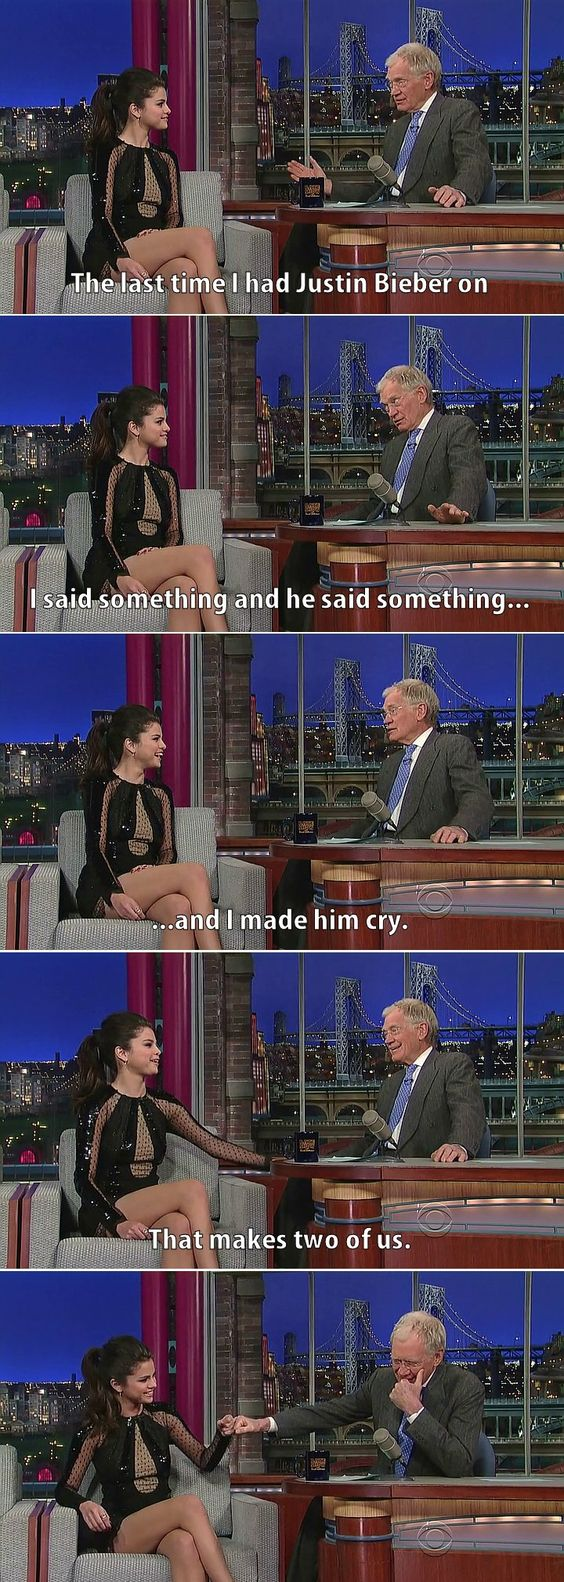 18833 Letterman and Selena Gomez discus the Bieber situation